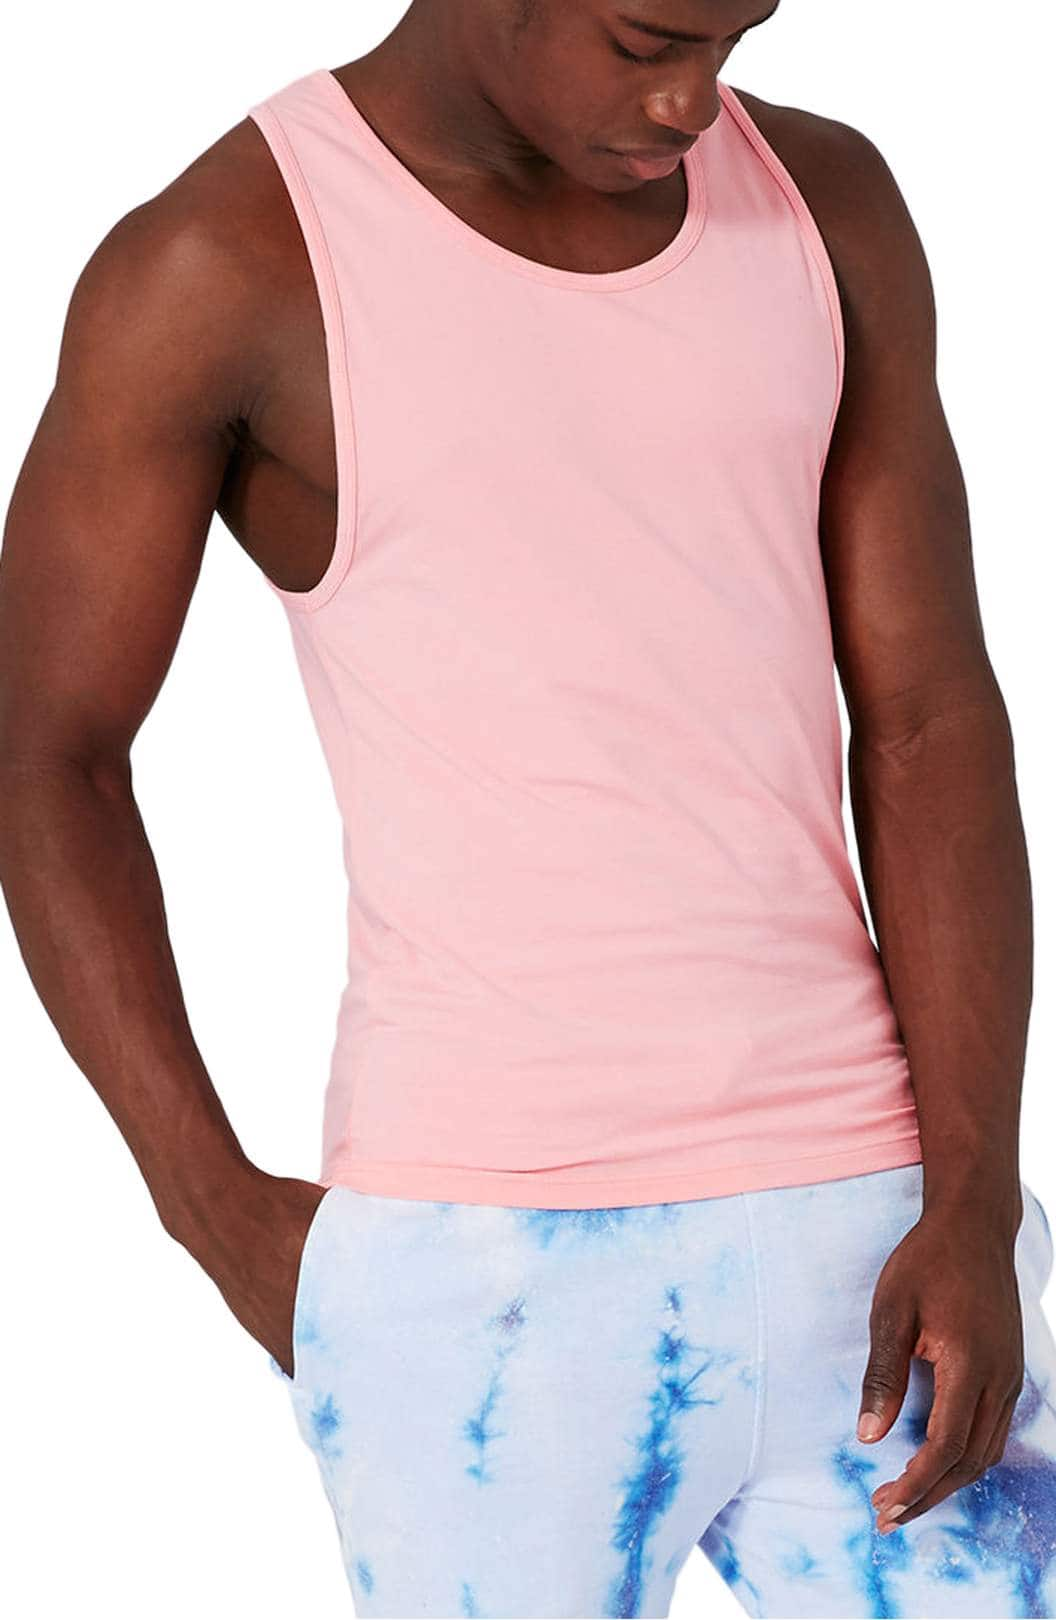 Extra 20% Off Selected Sale Items at Nordstrom + Free Shipping (Men's Apparel from $4.79)